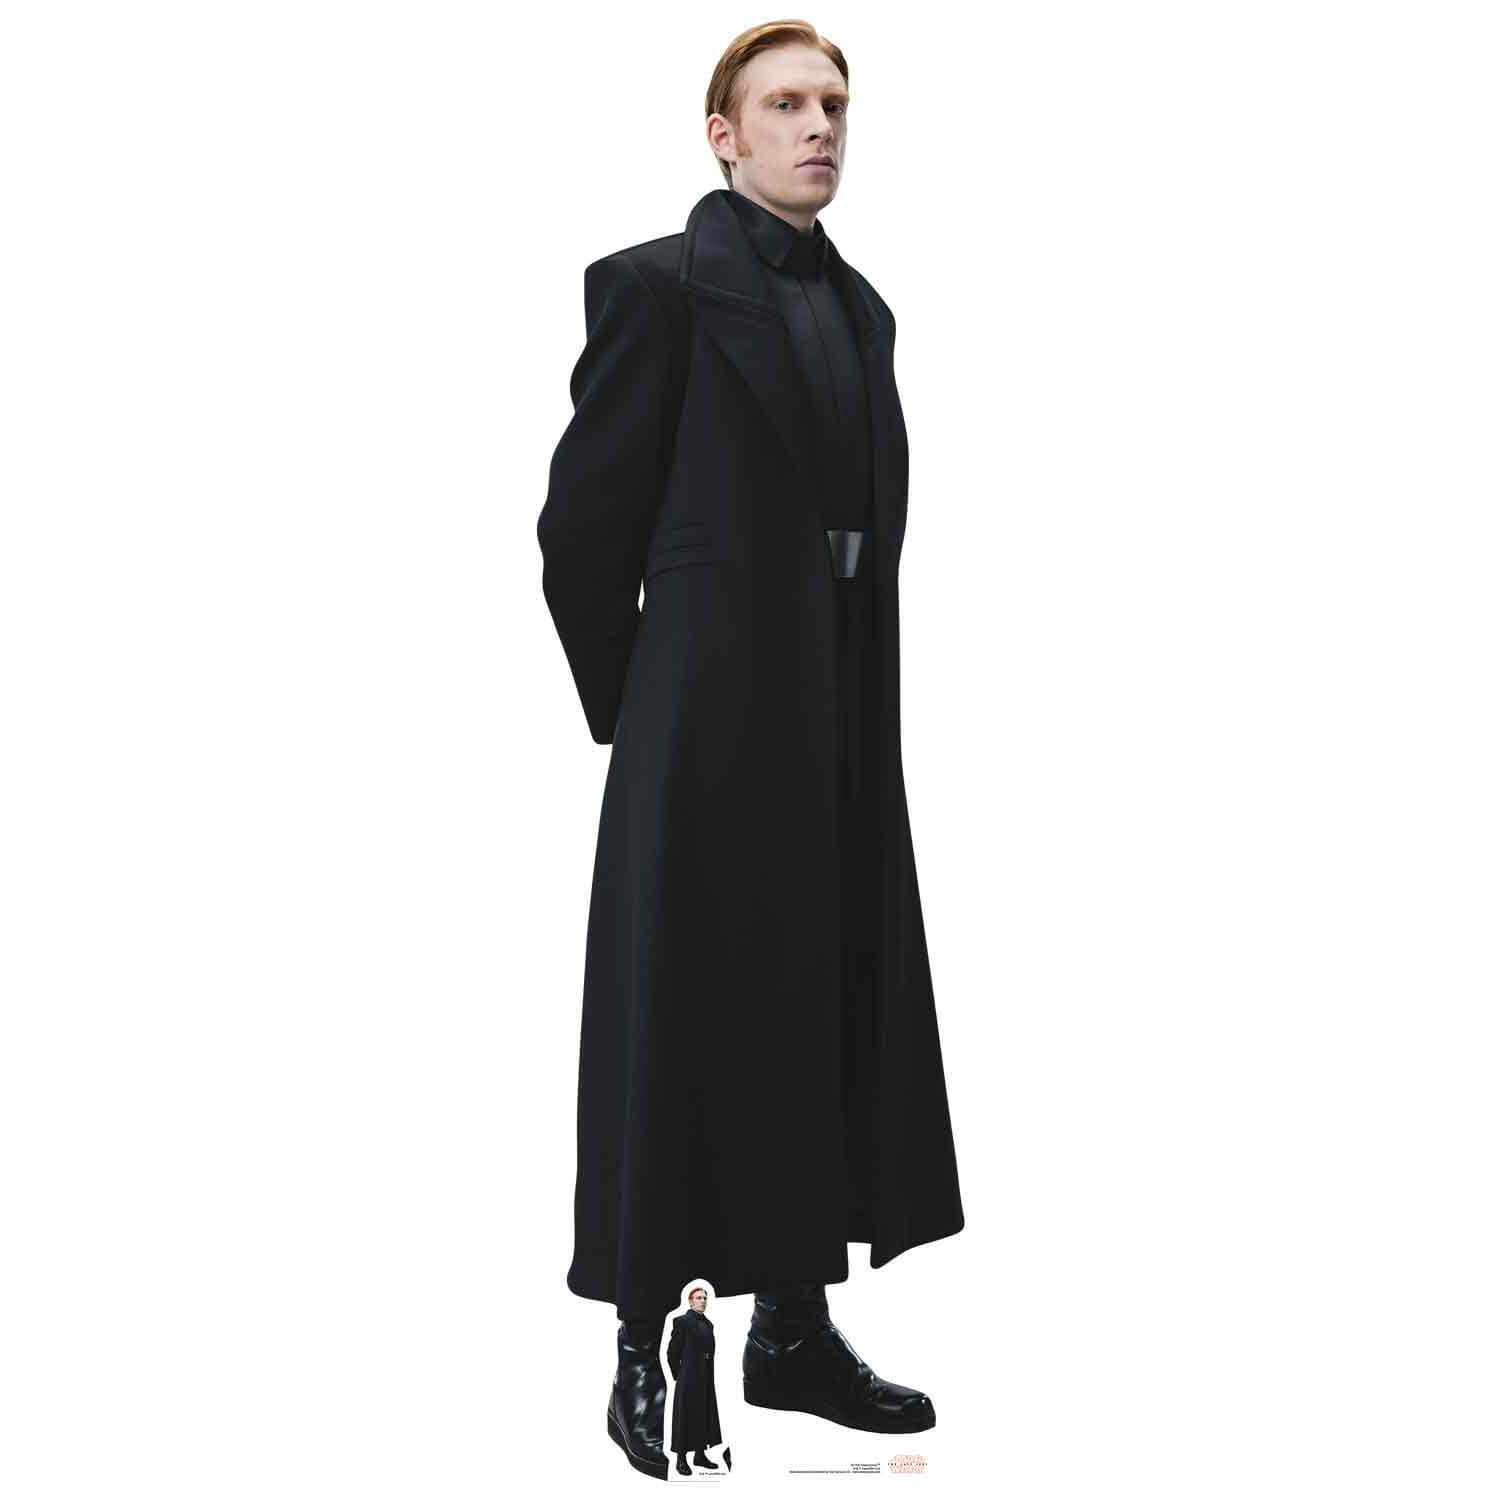 Star Wars: The Last Jedi General Hux Life-Size Cut Out